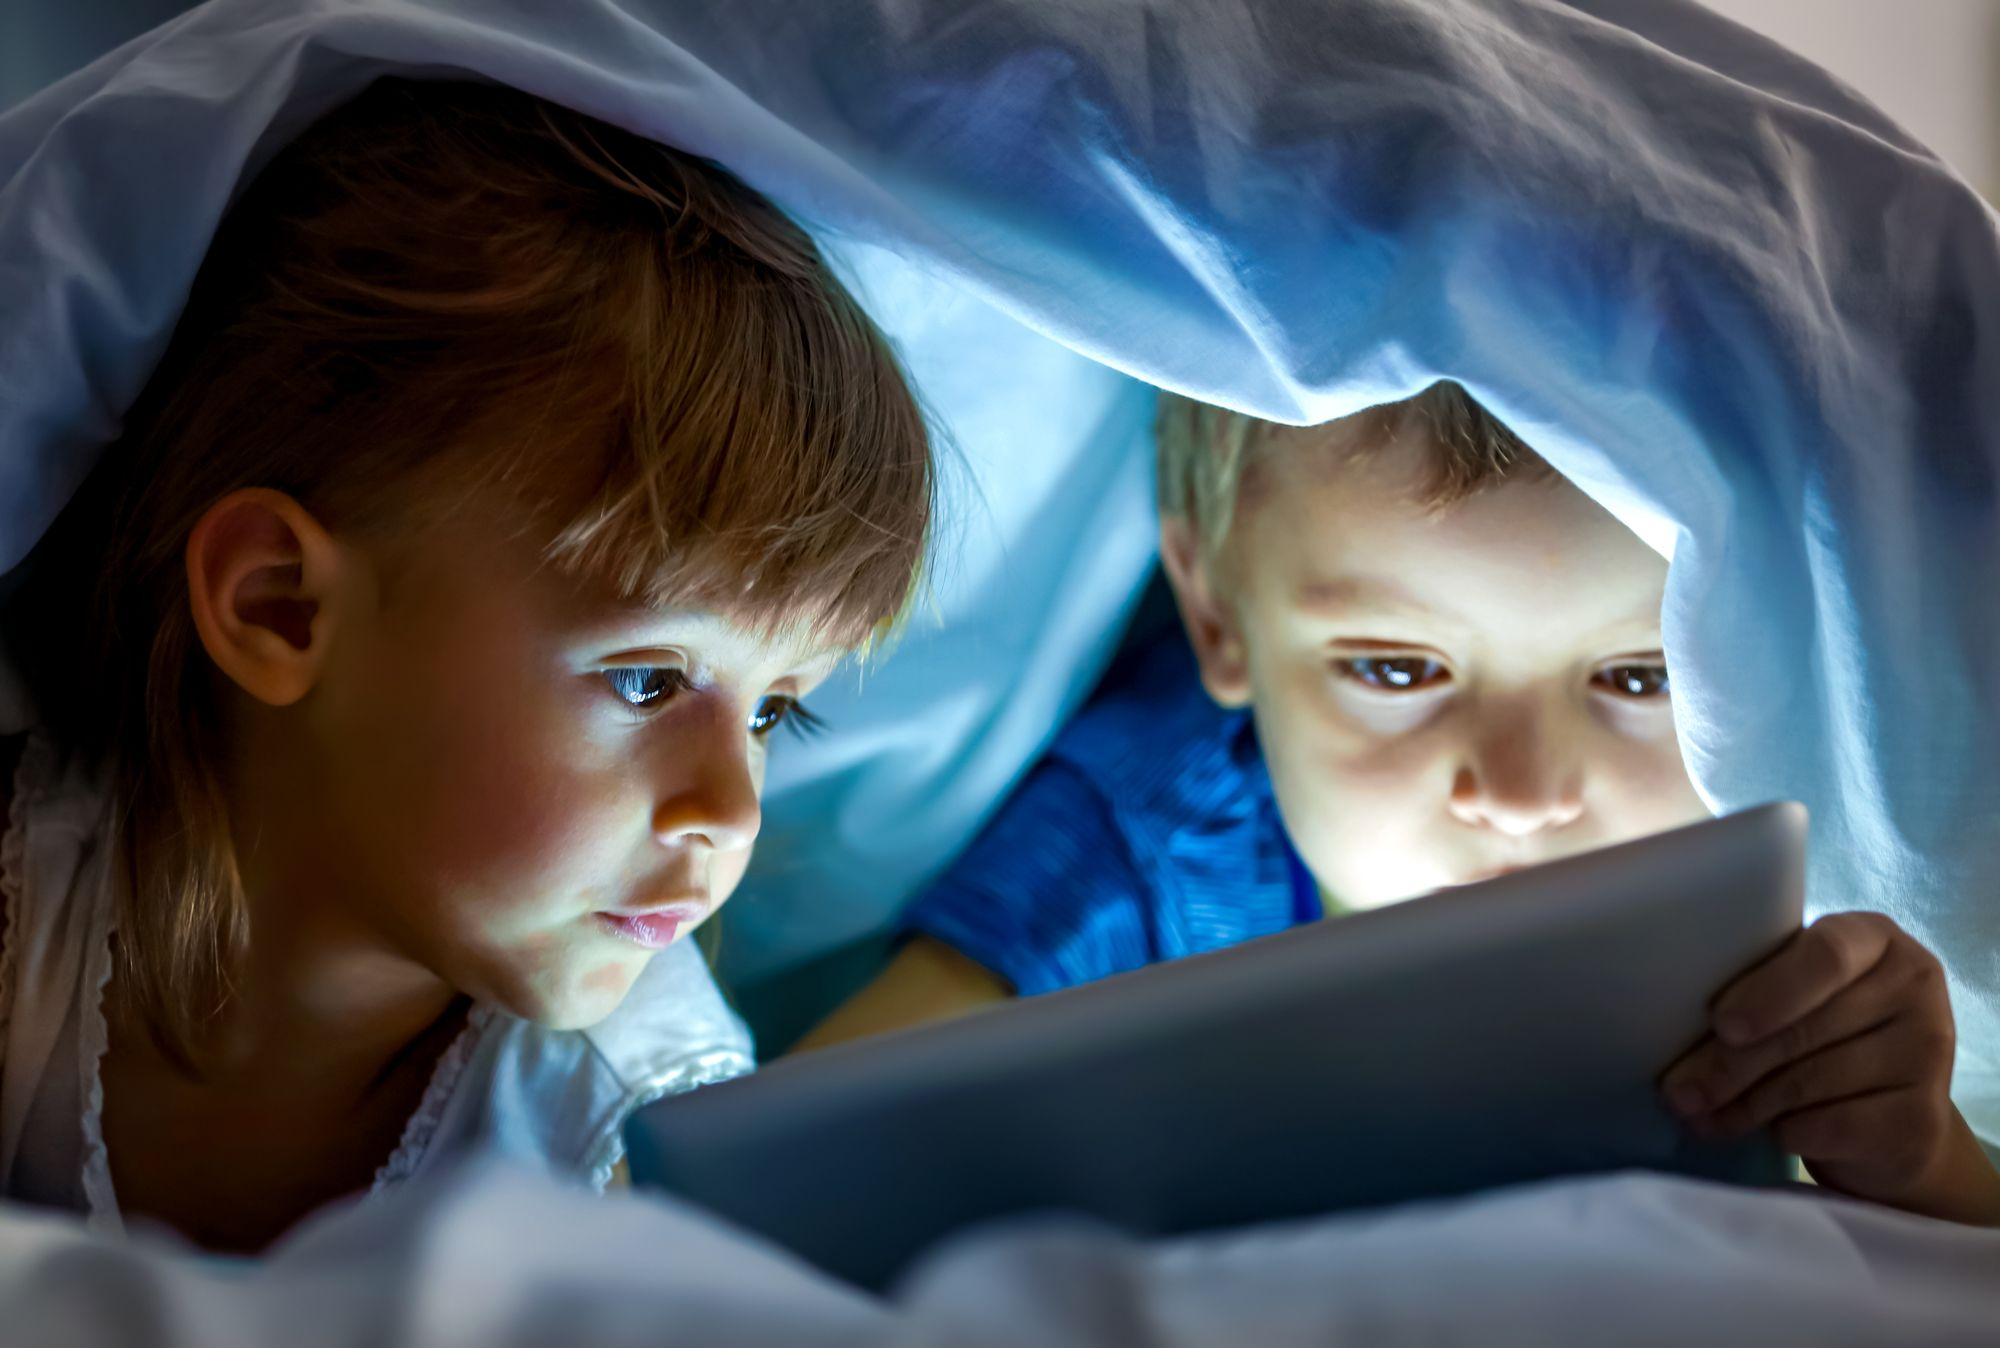 Kids under Blanket Sleep Screen Time